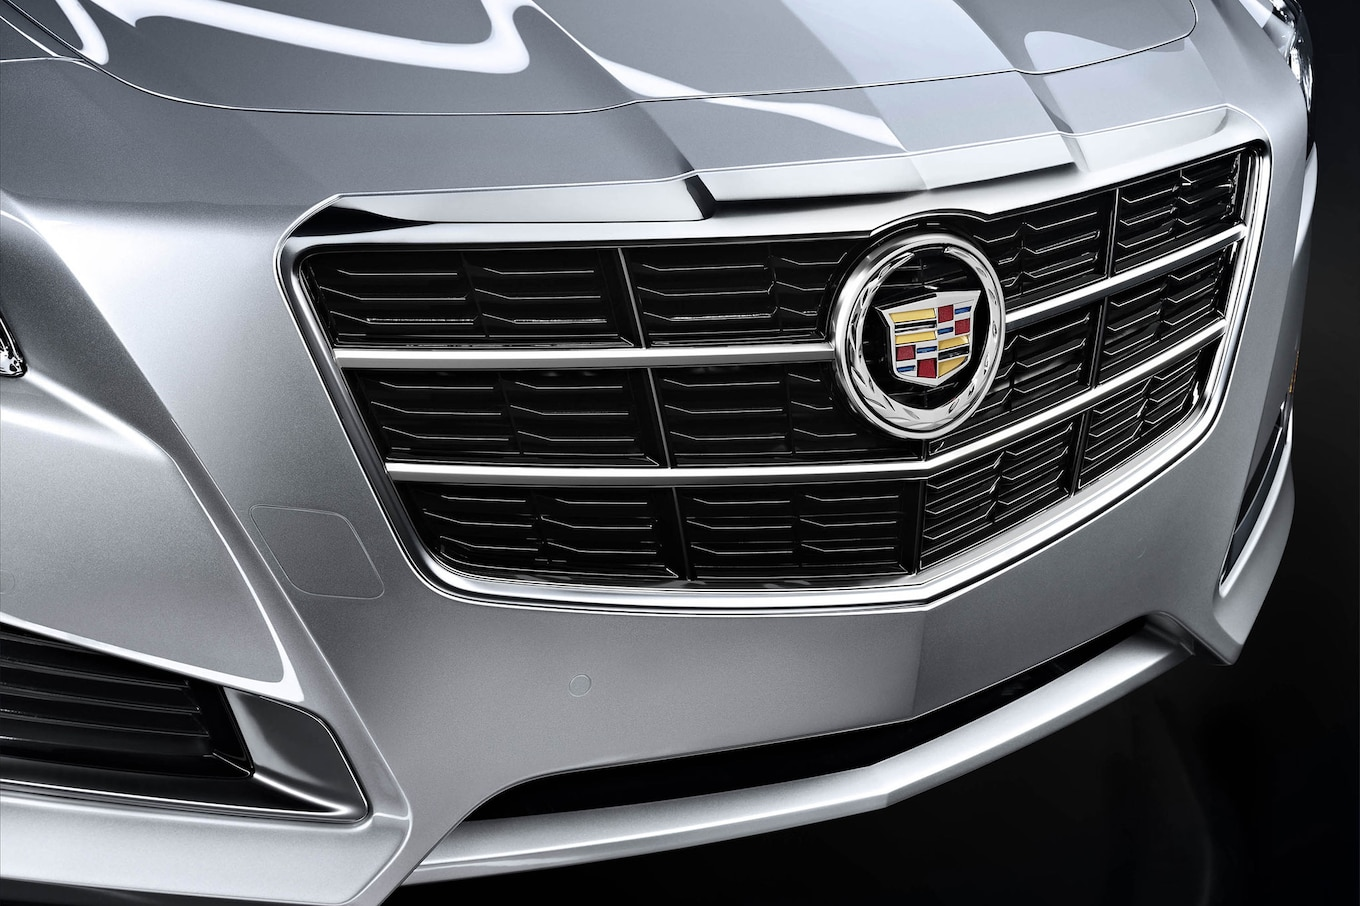 2014 Cadillac Cts Grill